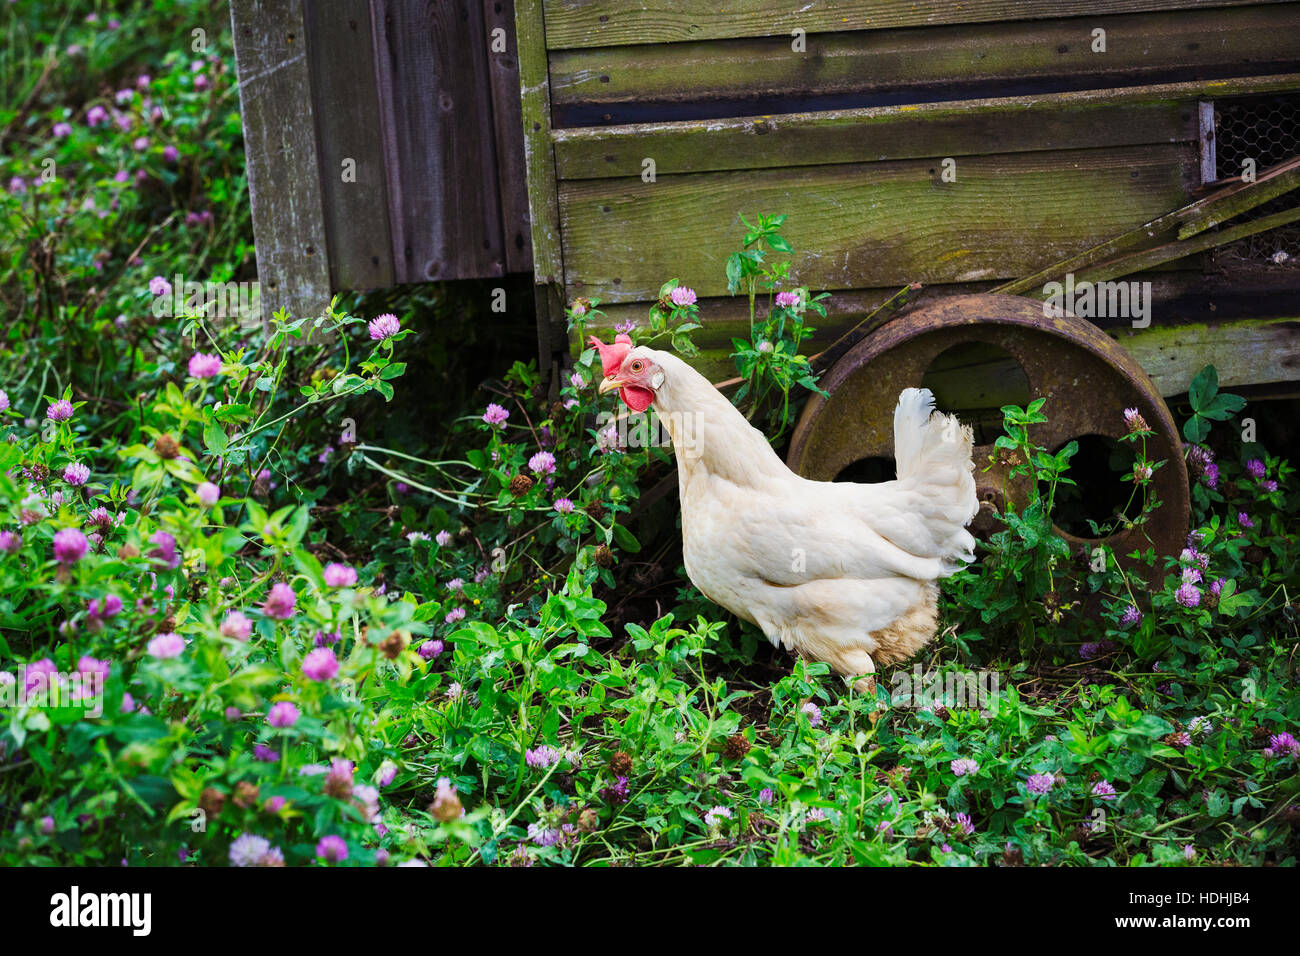 Rooster stands next to mobile chicken coop. - Stock Image